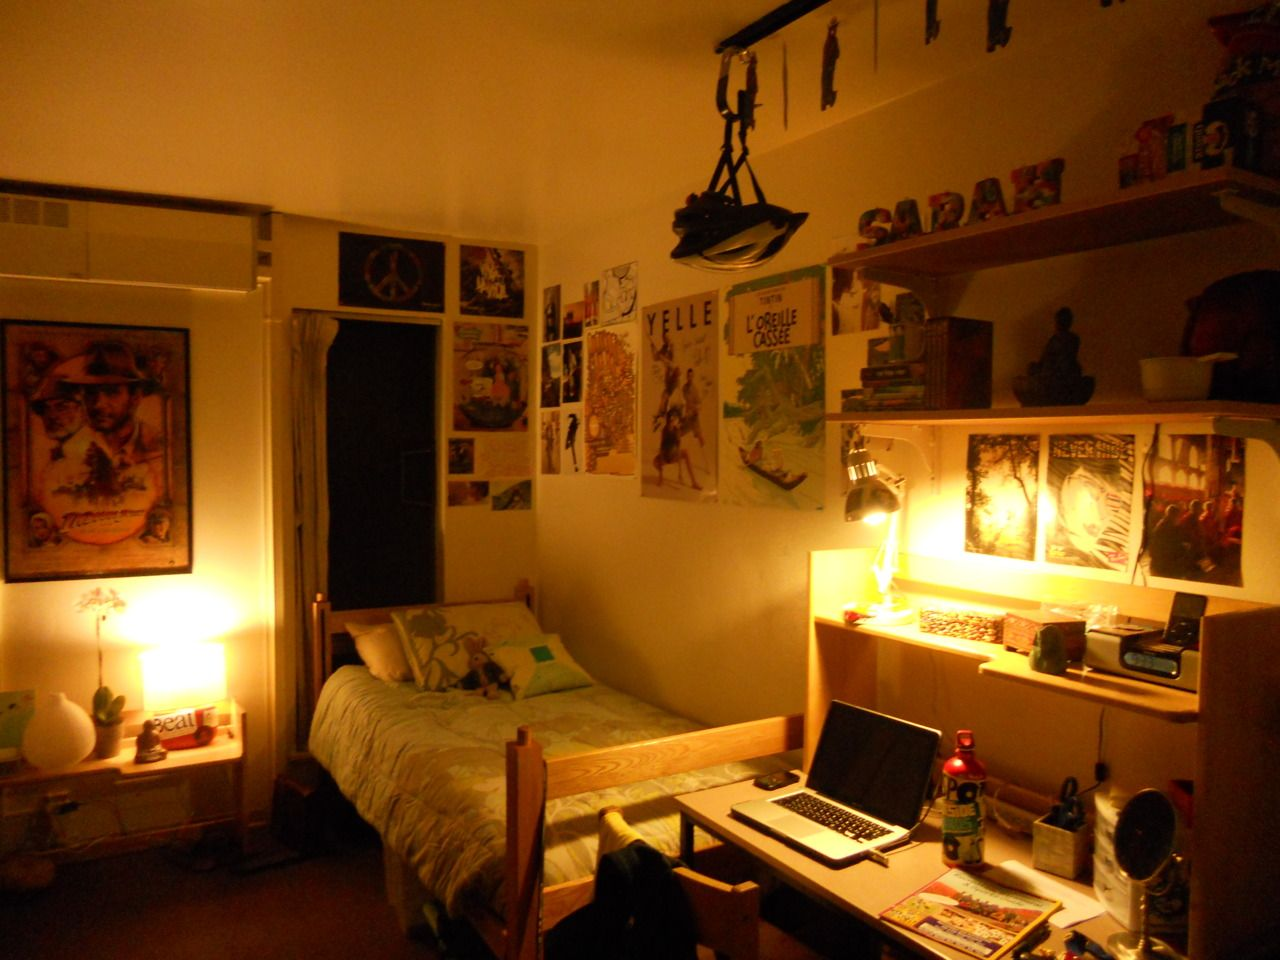 college bedroom. Good Single Dorm Room Designs With Cool College Ideas Inside Decorating For Bedroom